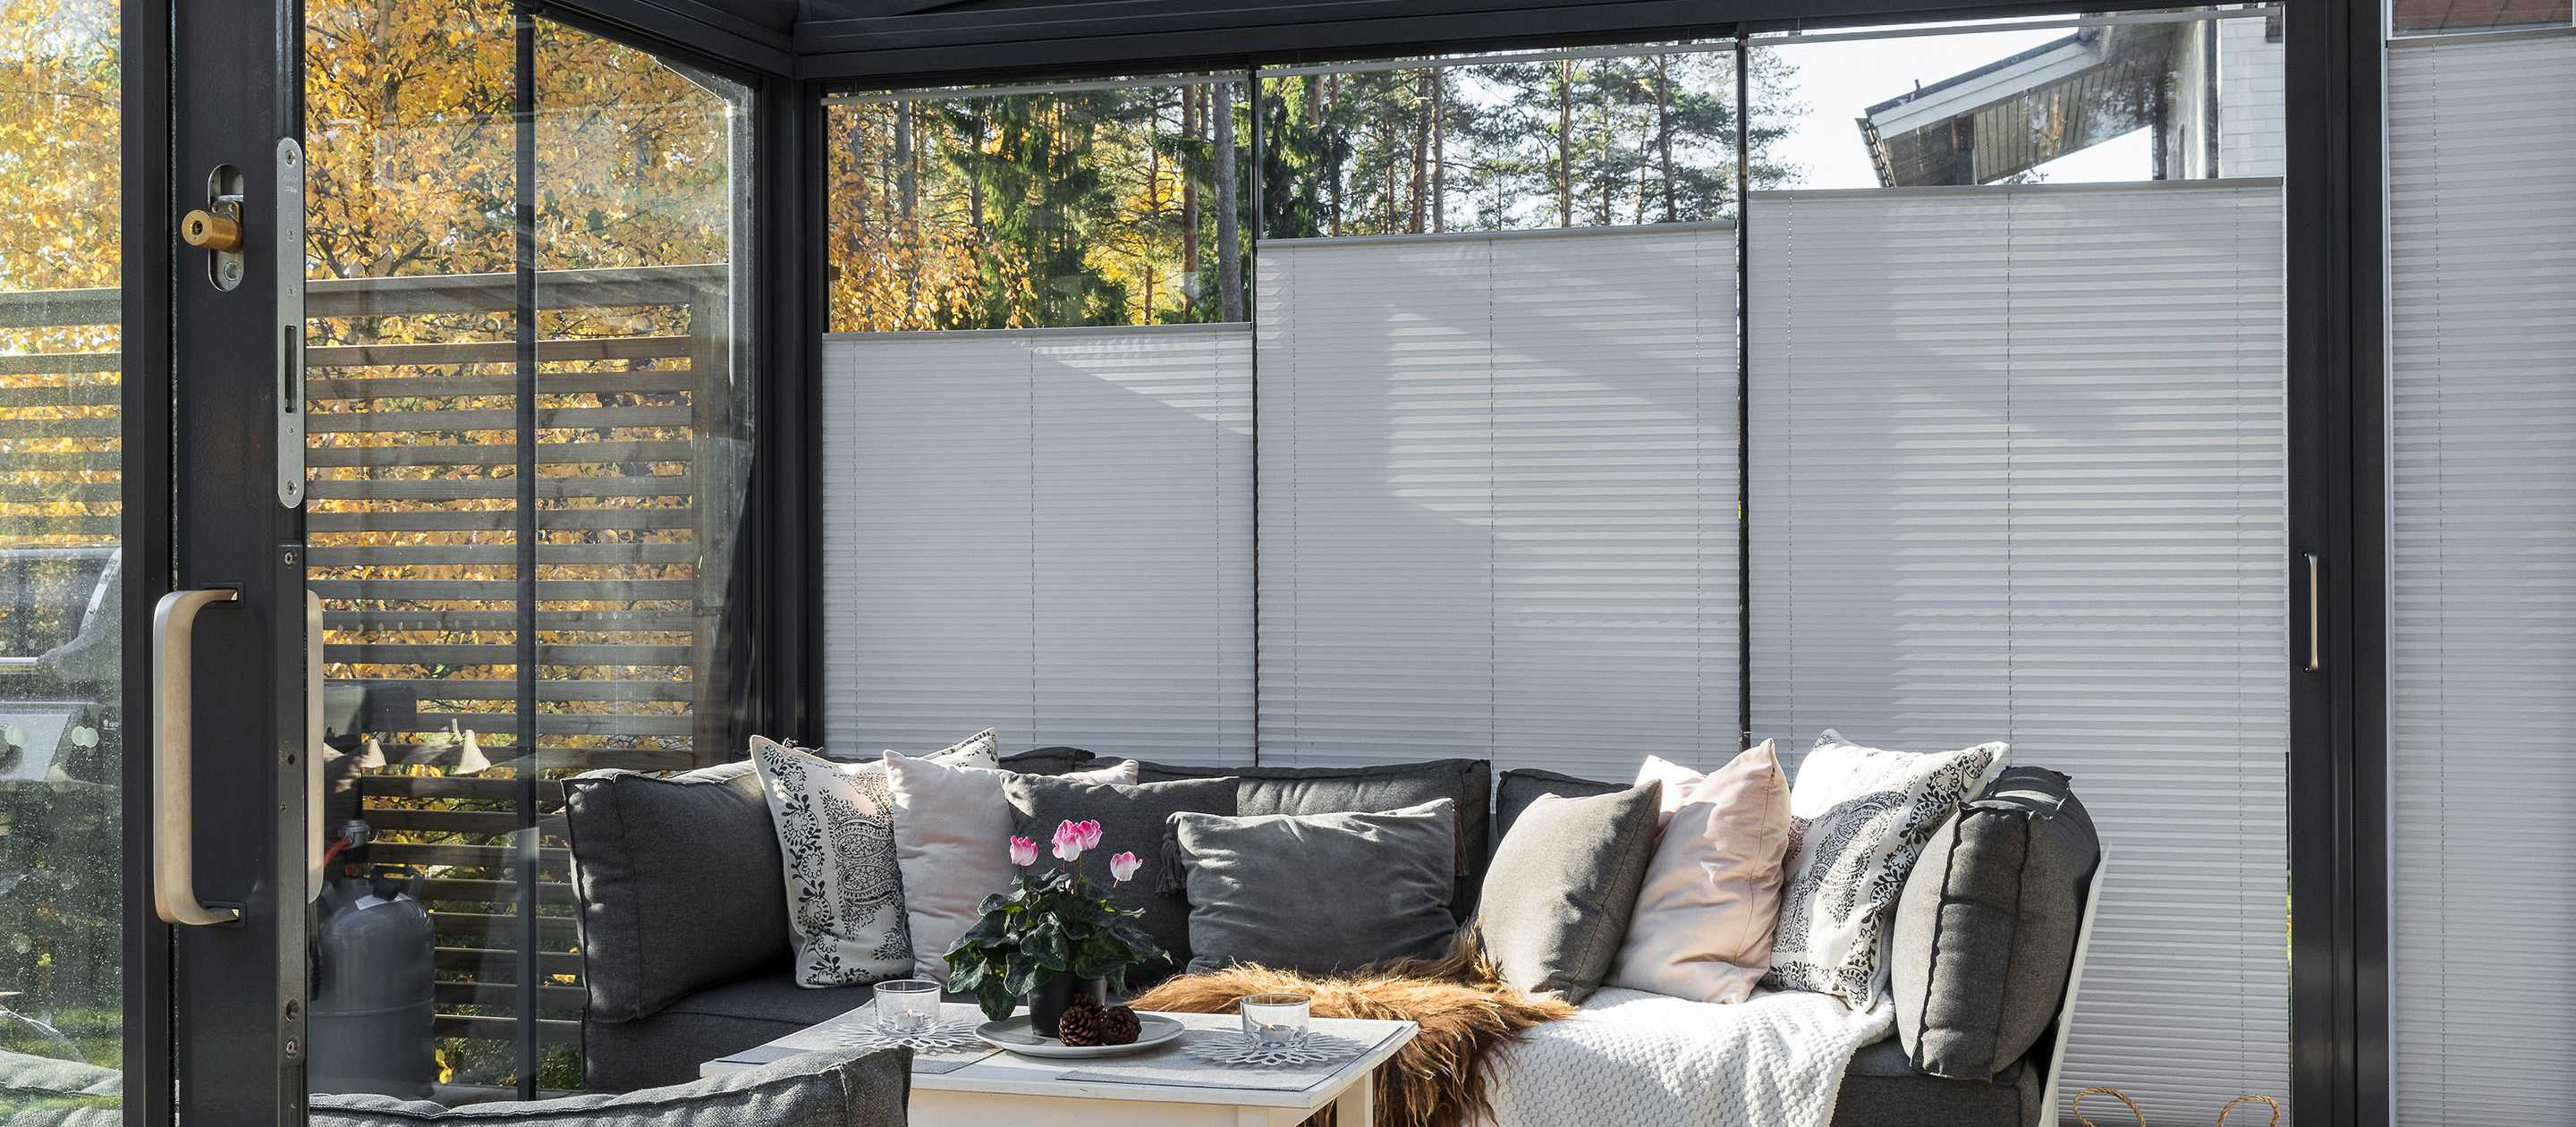 screens and blinds, curtains for windows, shades for windows, blinds